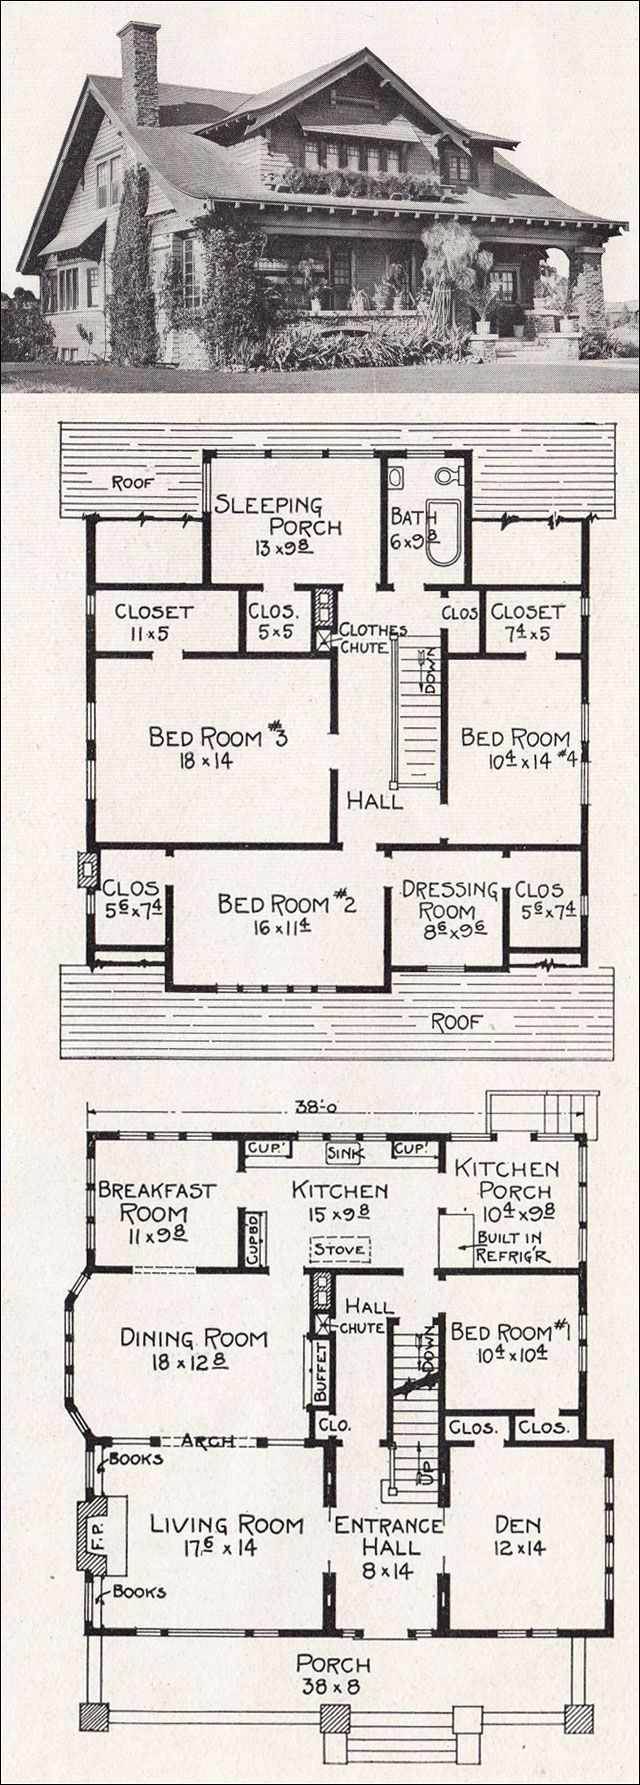 Great Vintage House Plan That Can Easily Be Conformed To Our Modern Day Life  Style.